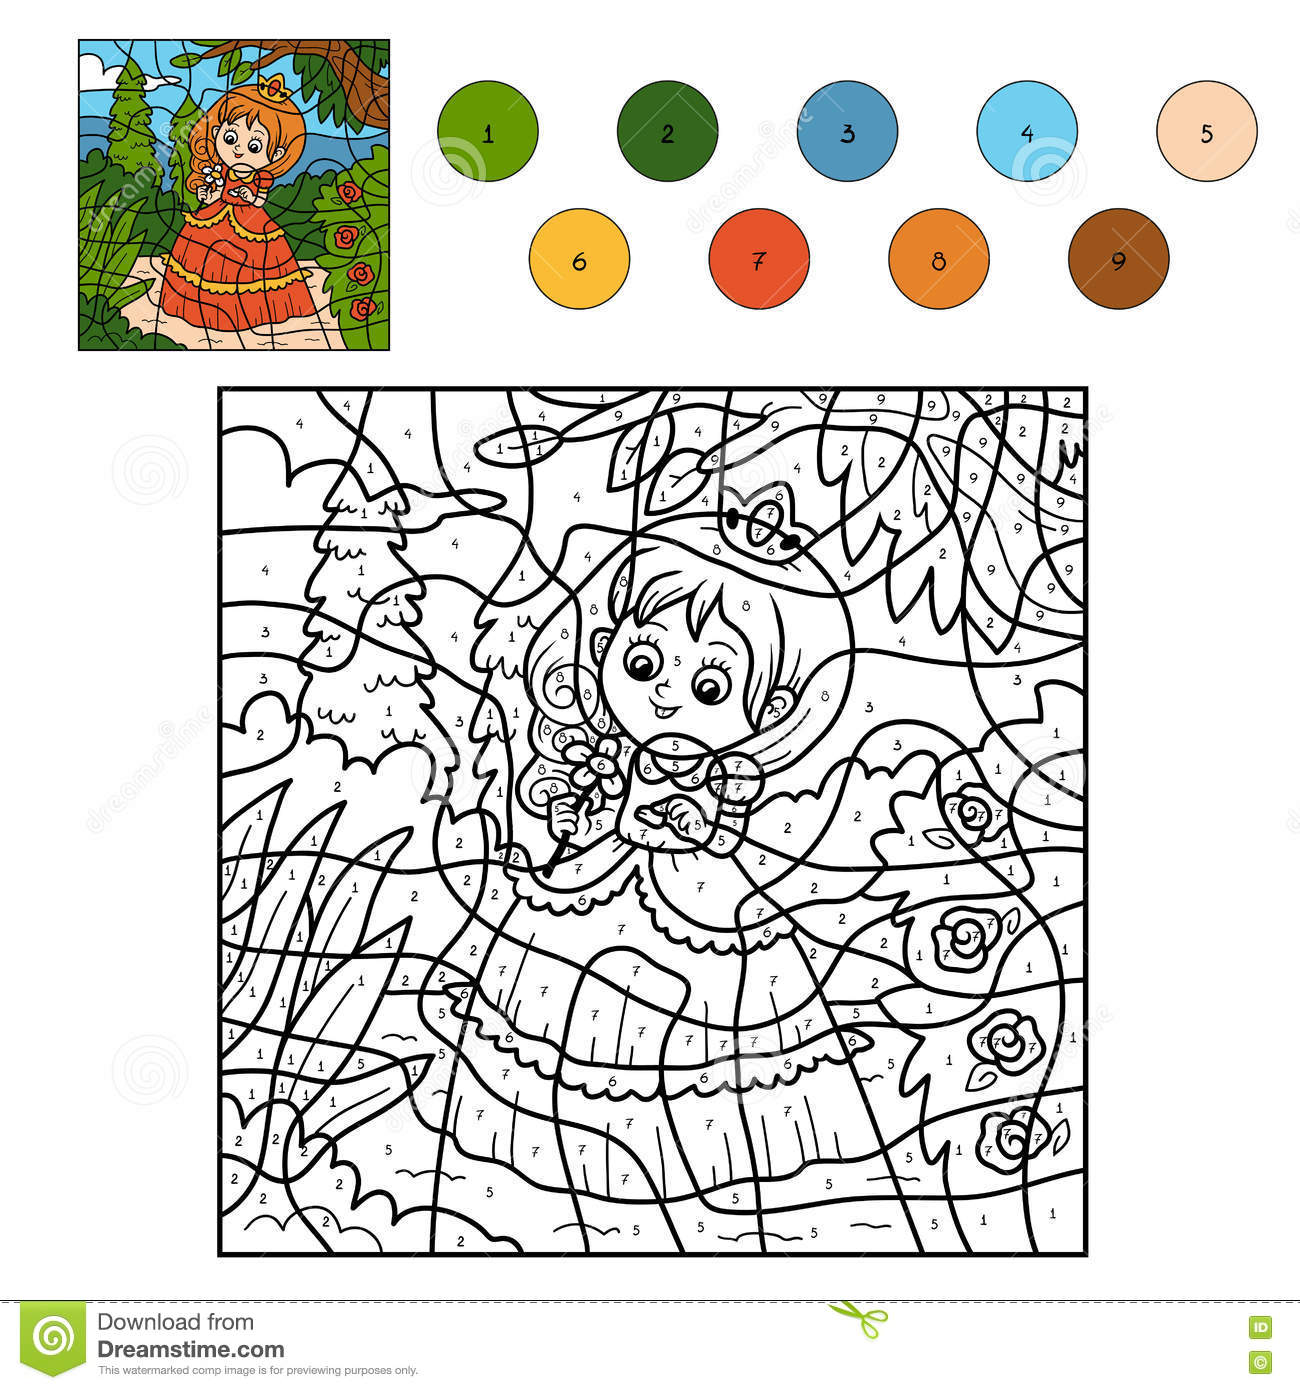 Game color by numbers - Color By Number Little Princess